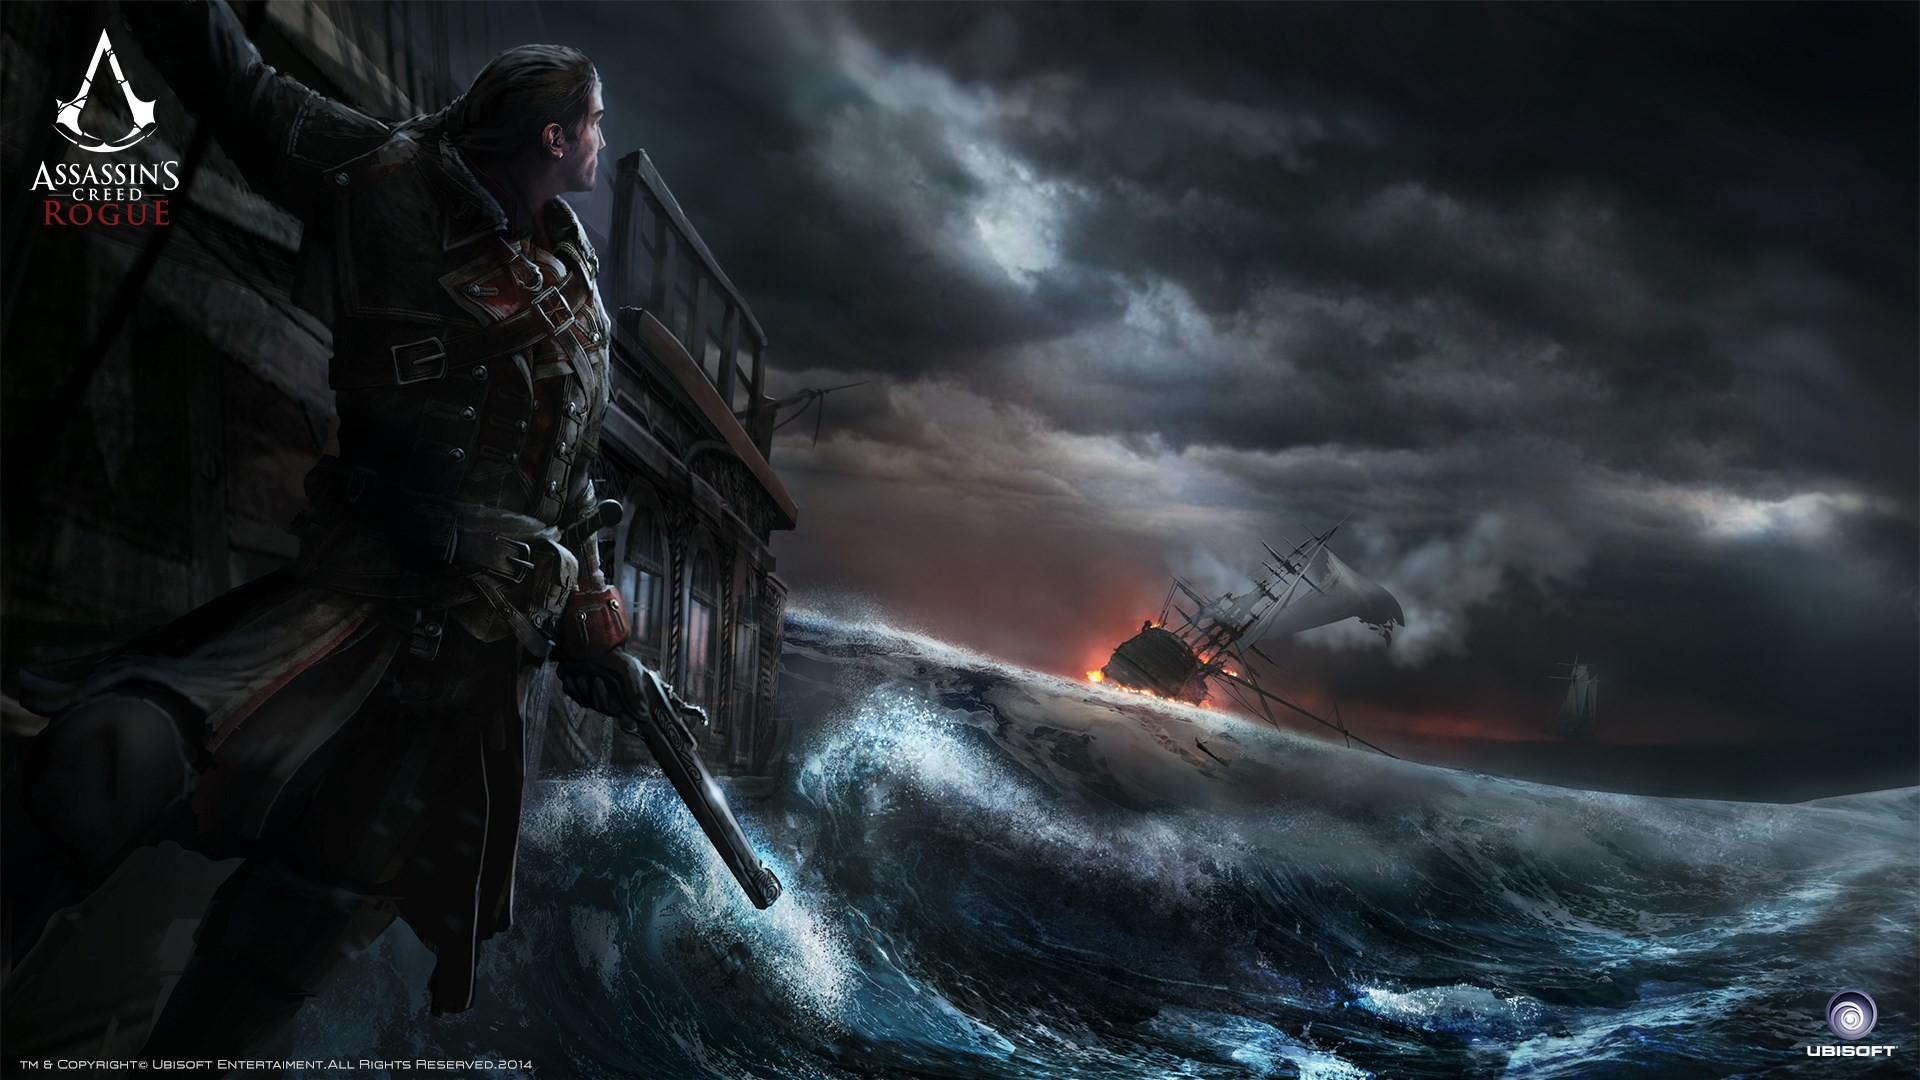 1920x1080 widescreen wallpaper assassins creed rogue by Lawford Longman (2017-03-08)